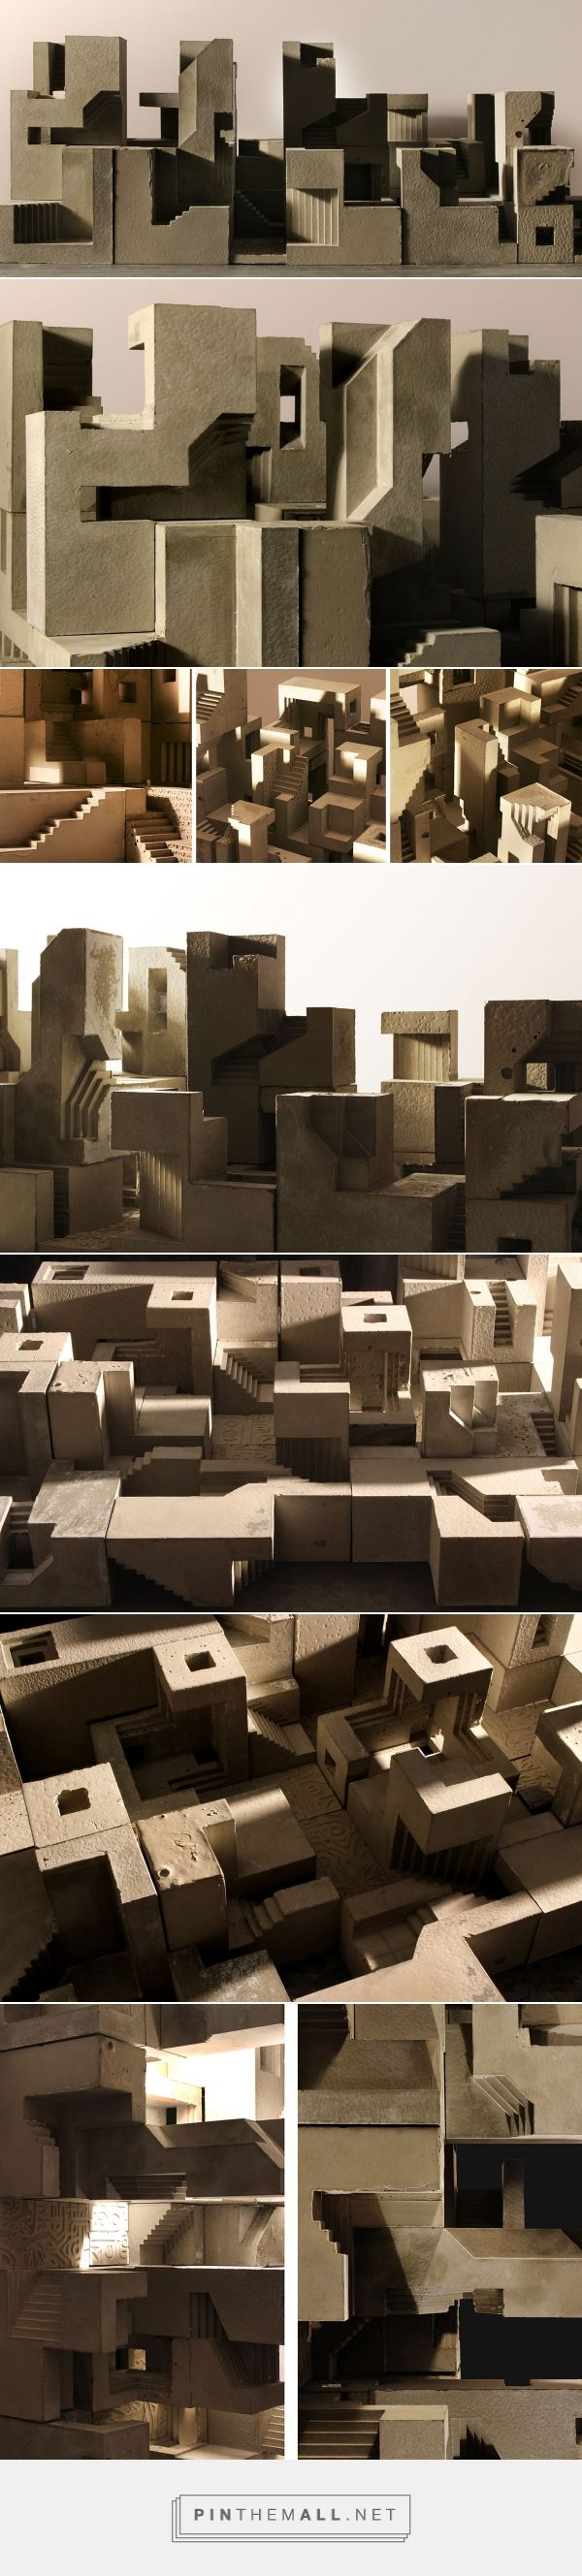 David Umemoto - soma cube city i